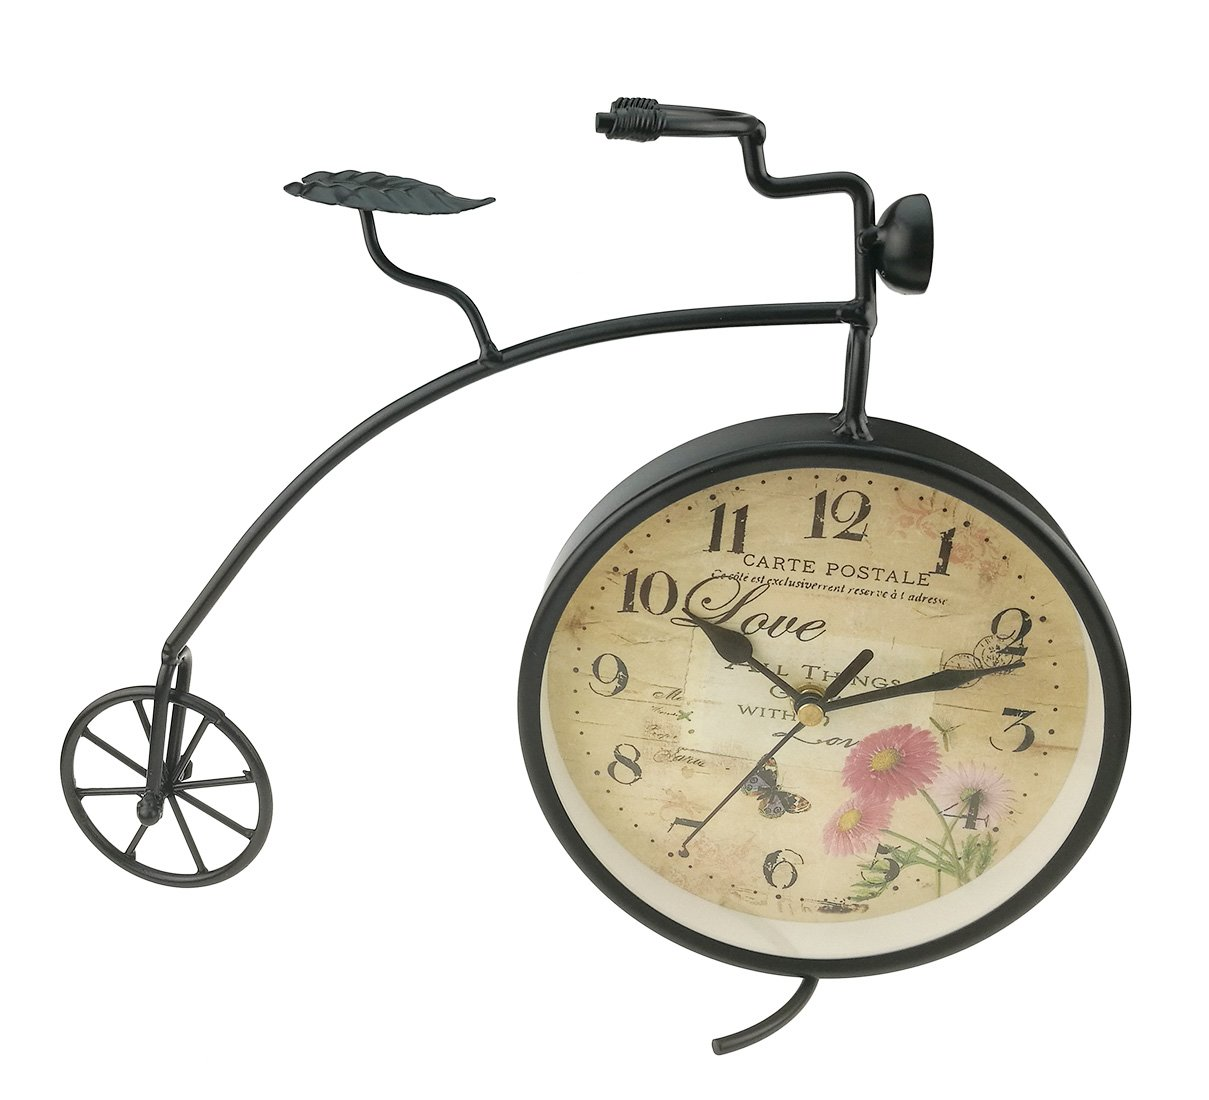 European Simple Creative Iron Art Antique Finishing Bicycle Clock - Iron wrought home decorative display item. High-quality plated finishment surface, delicate and smooth, full of metallic lustre. Floral butterfly design, let you feel the charm of vintage style. - clocks, bedroom-decor, bedroom - 61S6Jif53fL -